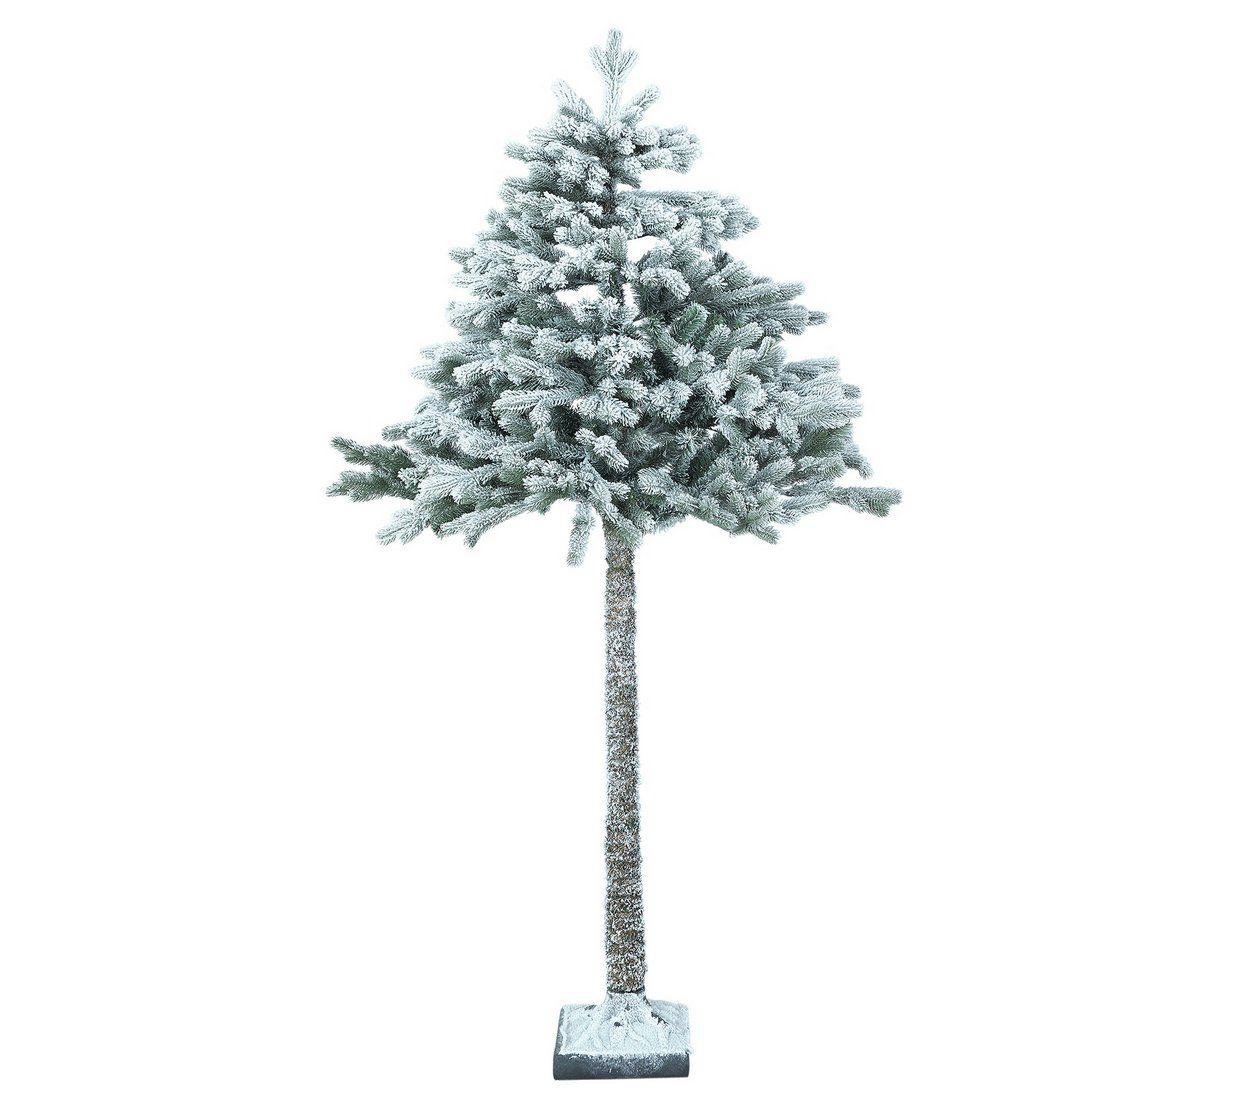 6ft Snowy Half Christmas Tree Green Christmas Trees Argos For People With Naughty Cats Half Christmas Tree Snowy Christmas Tree Green Christmas Tree